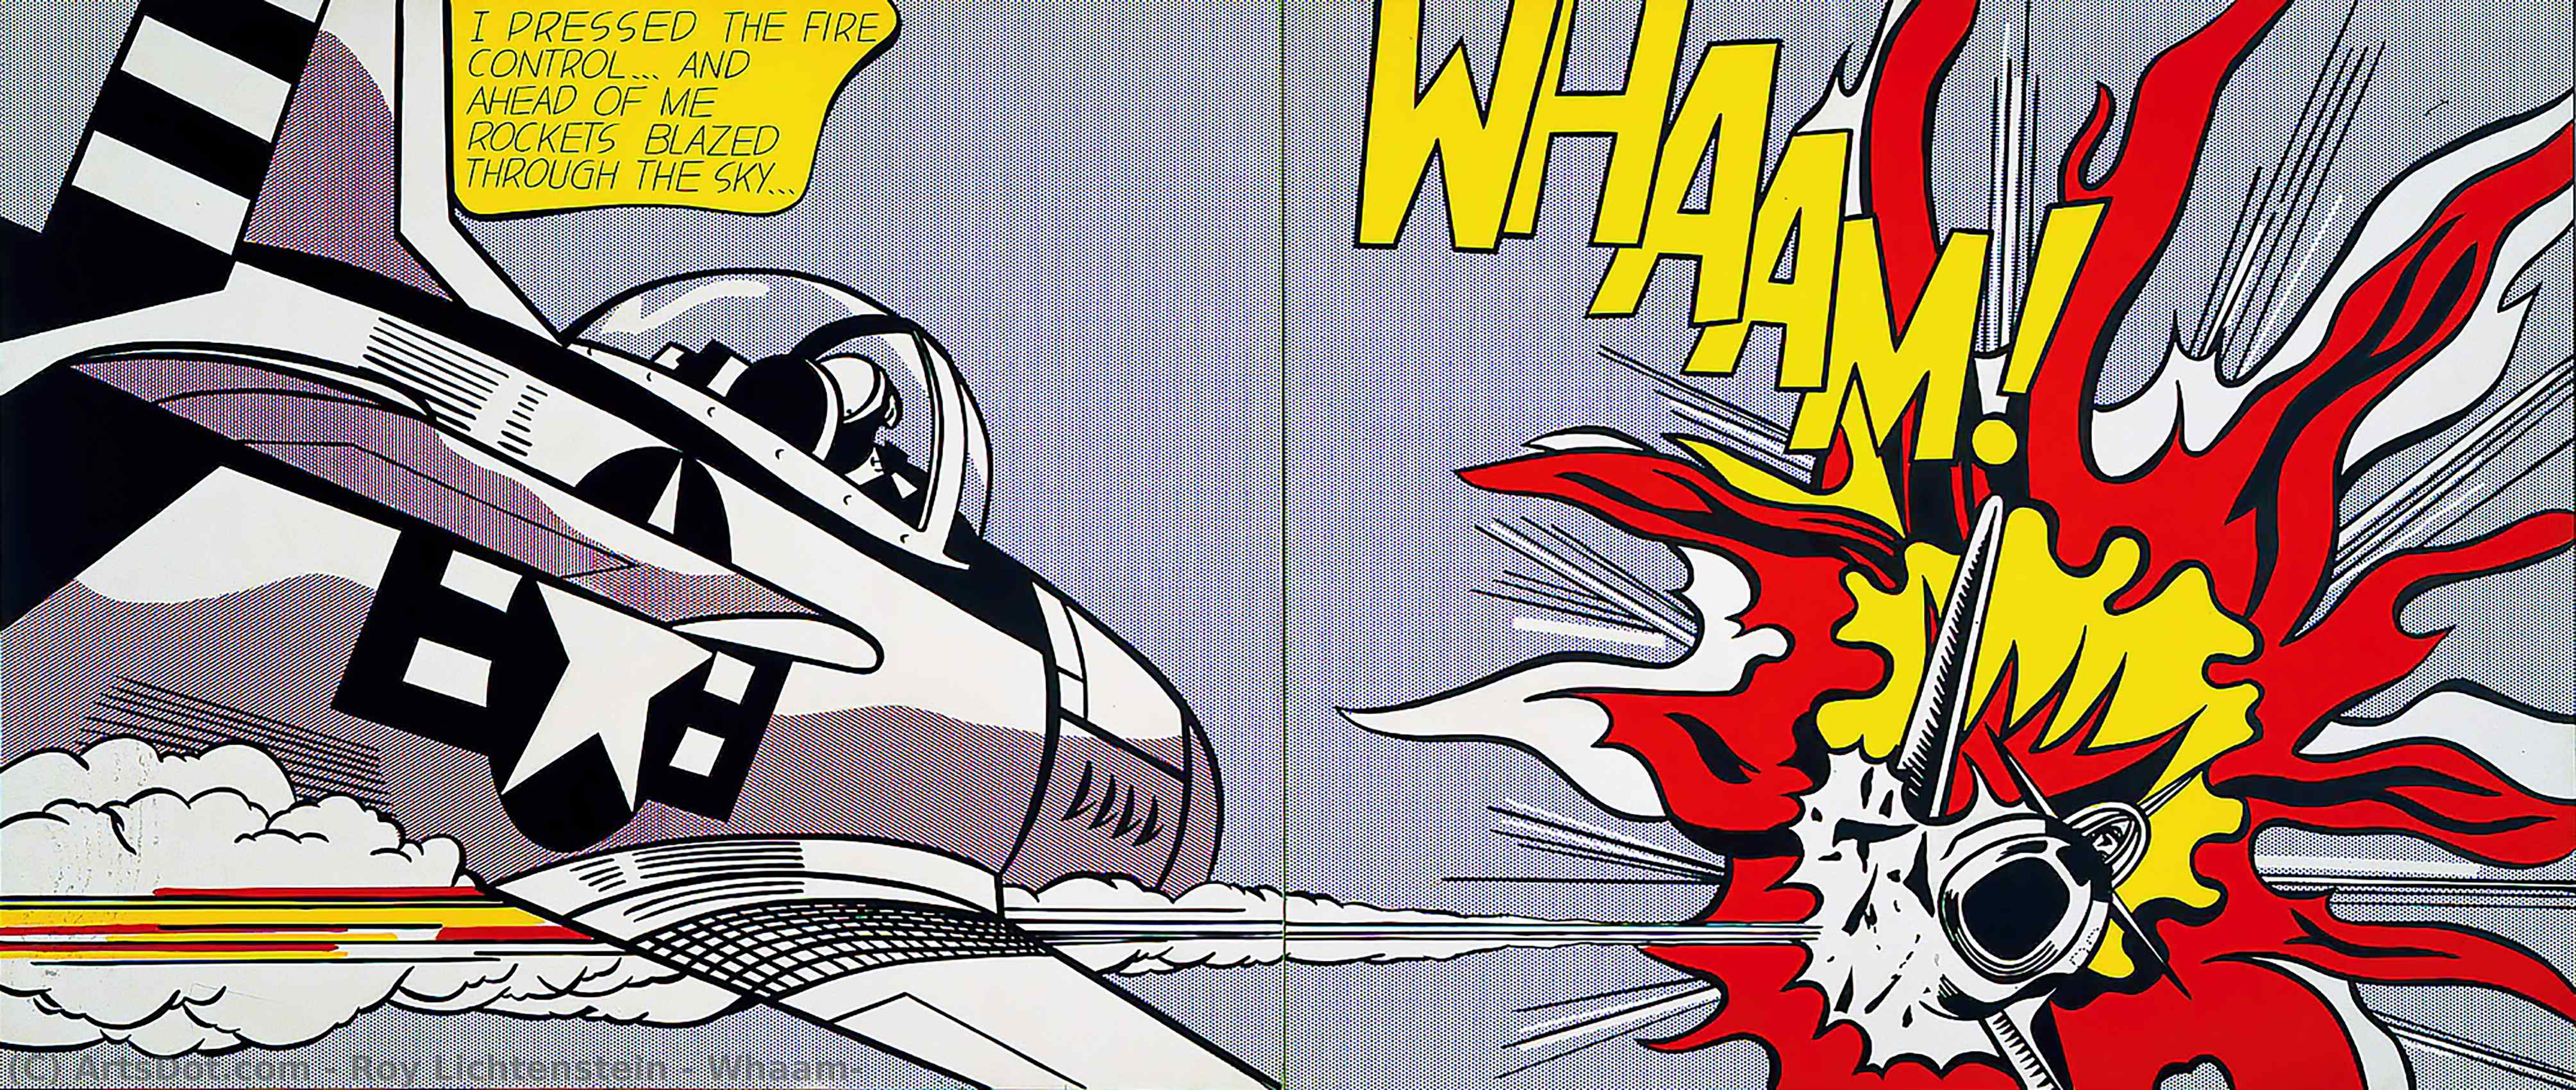 Wikioo.org - The Encyclopedia of Fine Arts - Painting, Artwork by Roy Lichtenstein - Whaam!